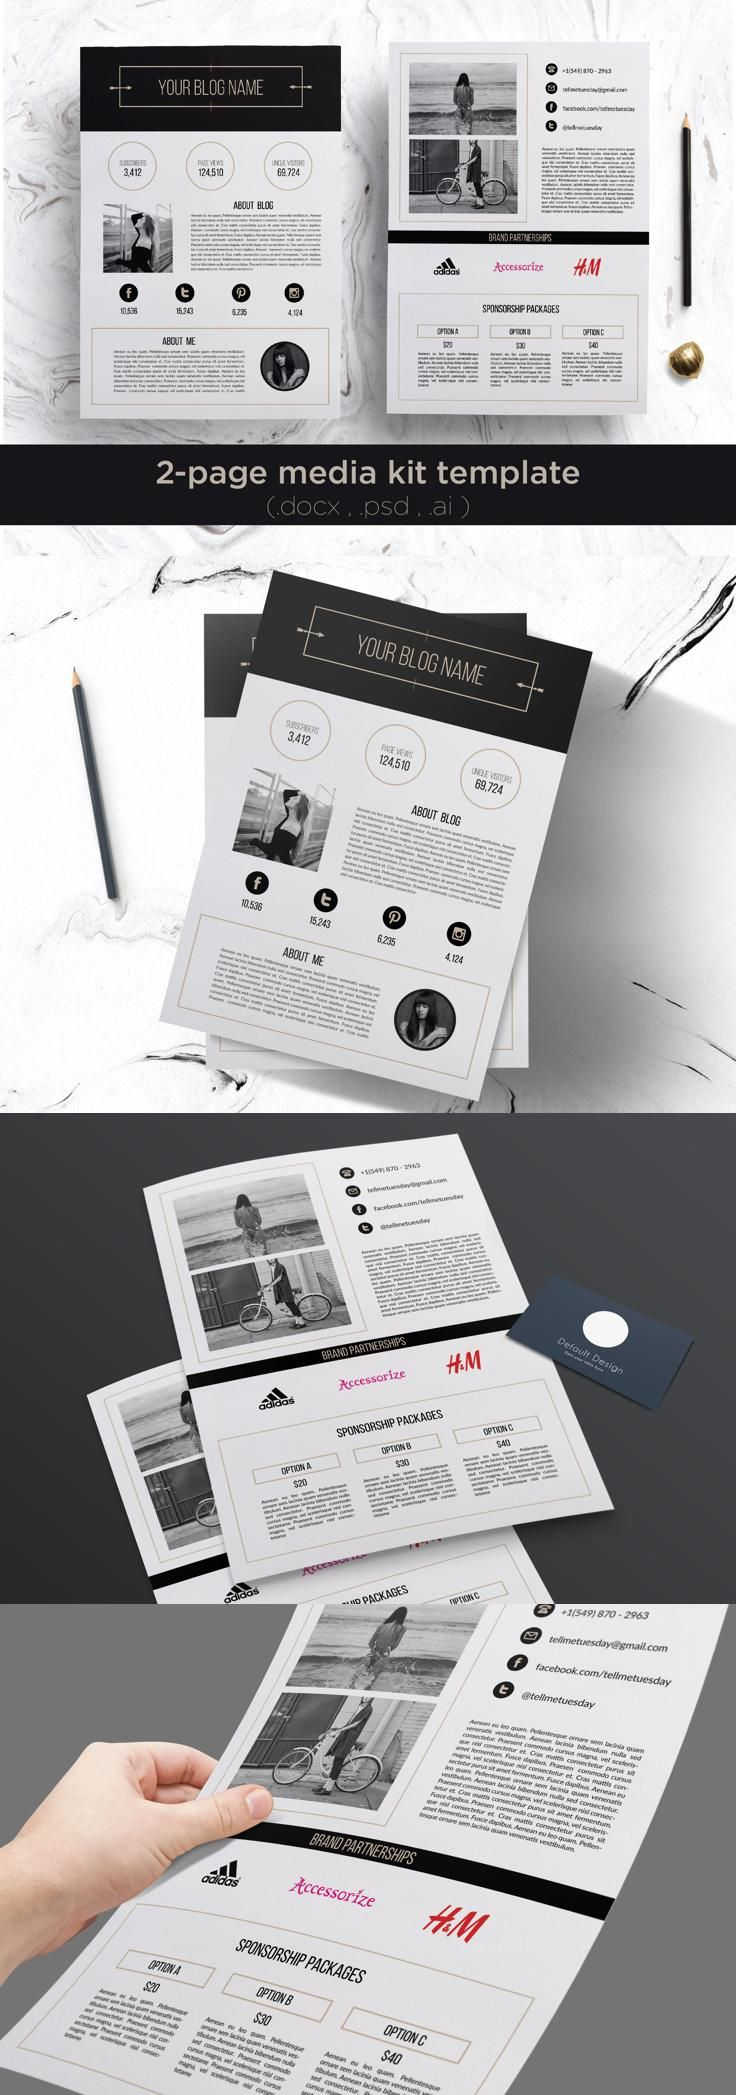 2 page media kit template download designs and template 2 page media kit template pronofoot35fo Image collections